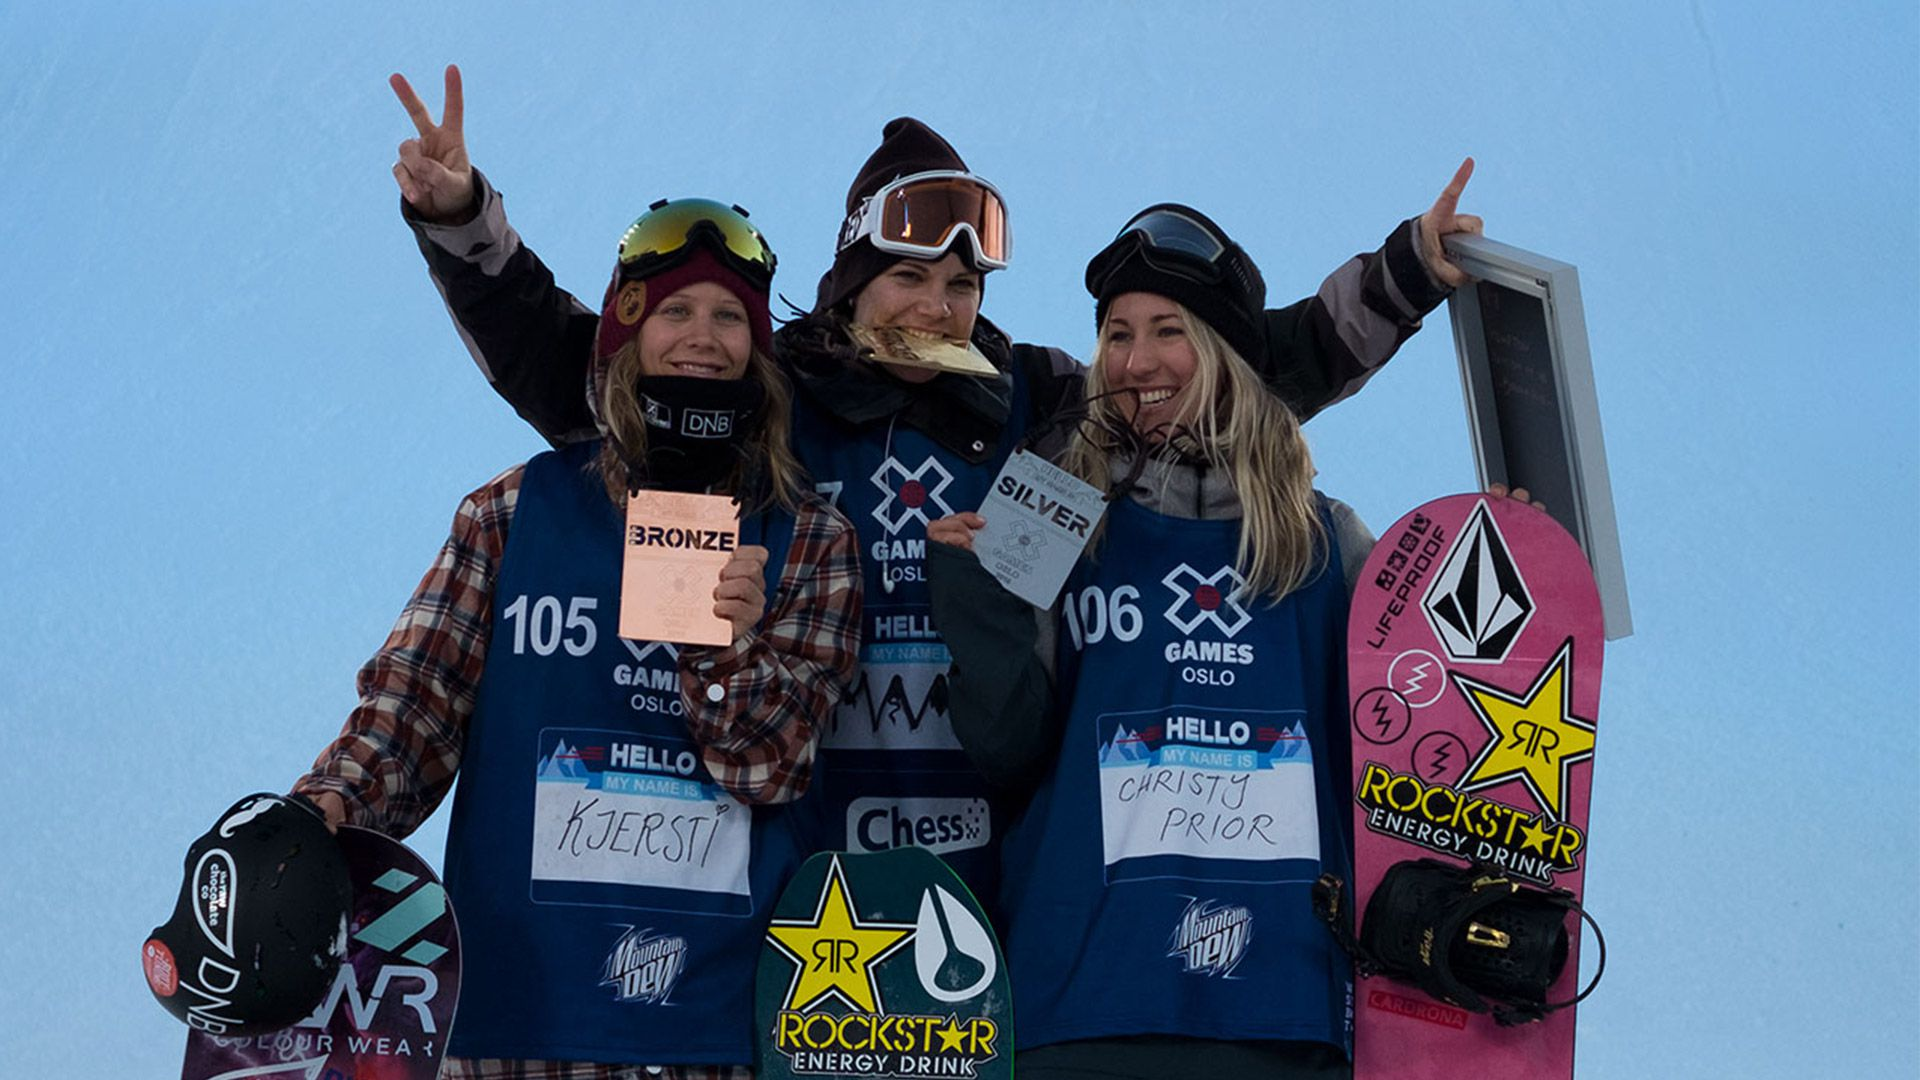 Girl Power: Fetele revin la Snowbord Big Air in X Games dupa o pauza de 16 ani